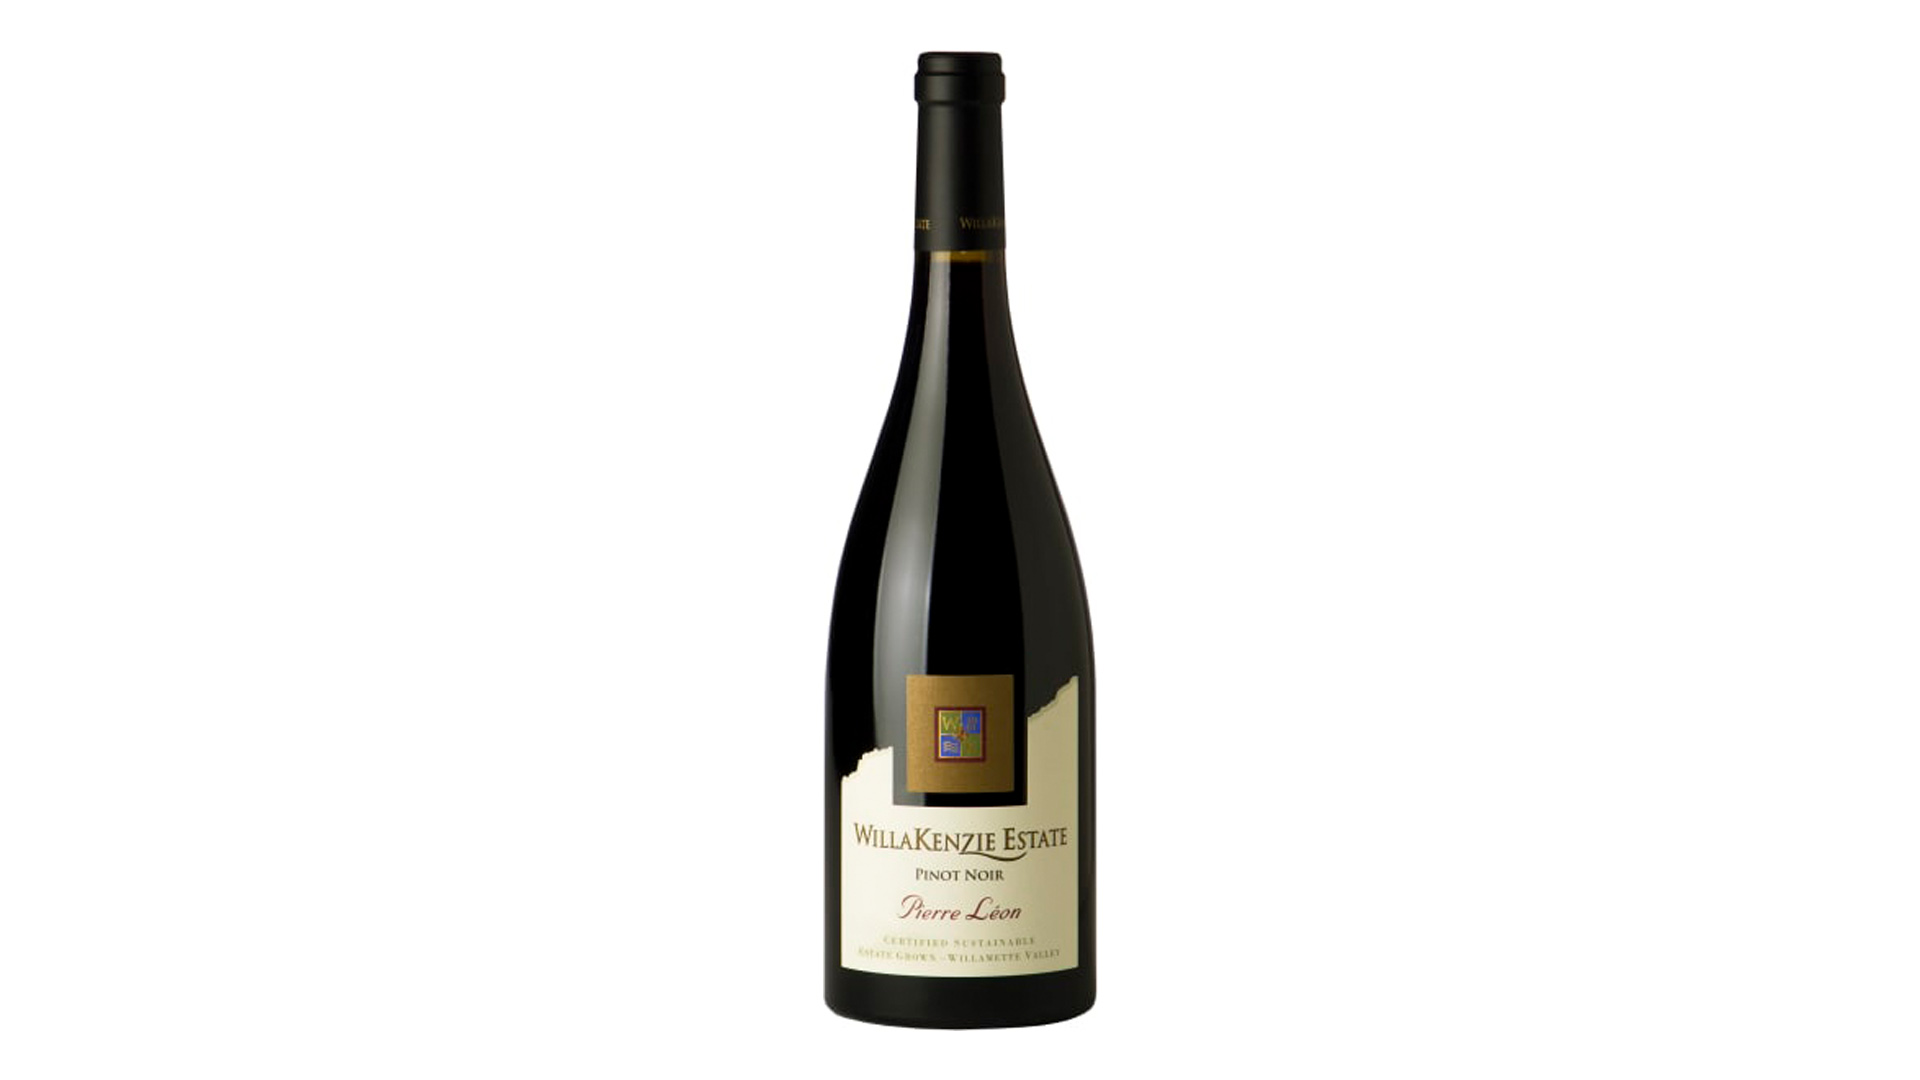 WillaKenzie Estate Pierre Leon Pinot Noir 2014 is one of 5 delightful wines special offers